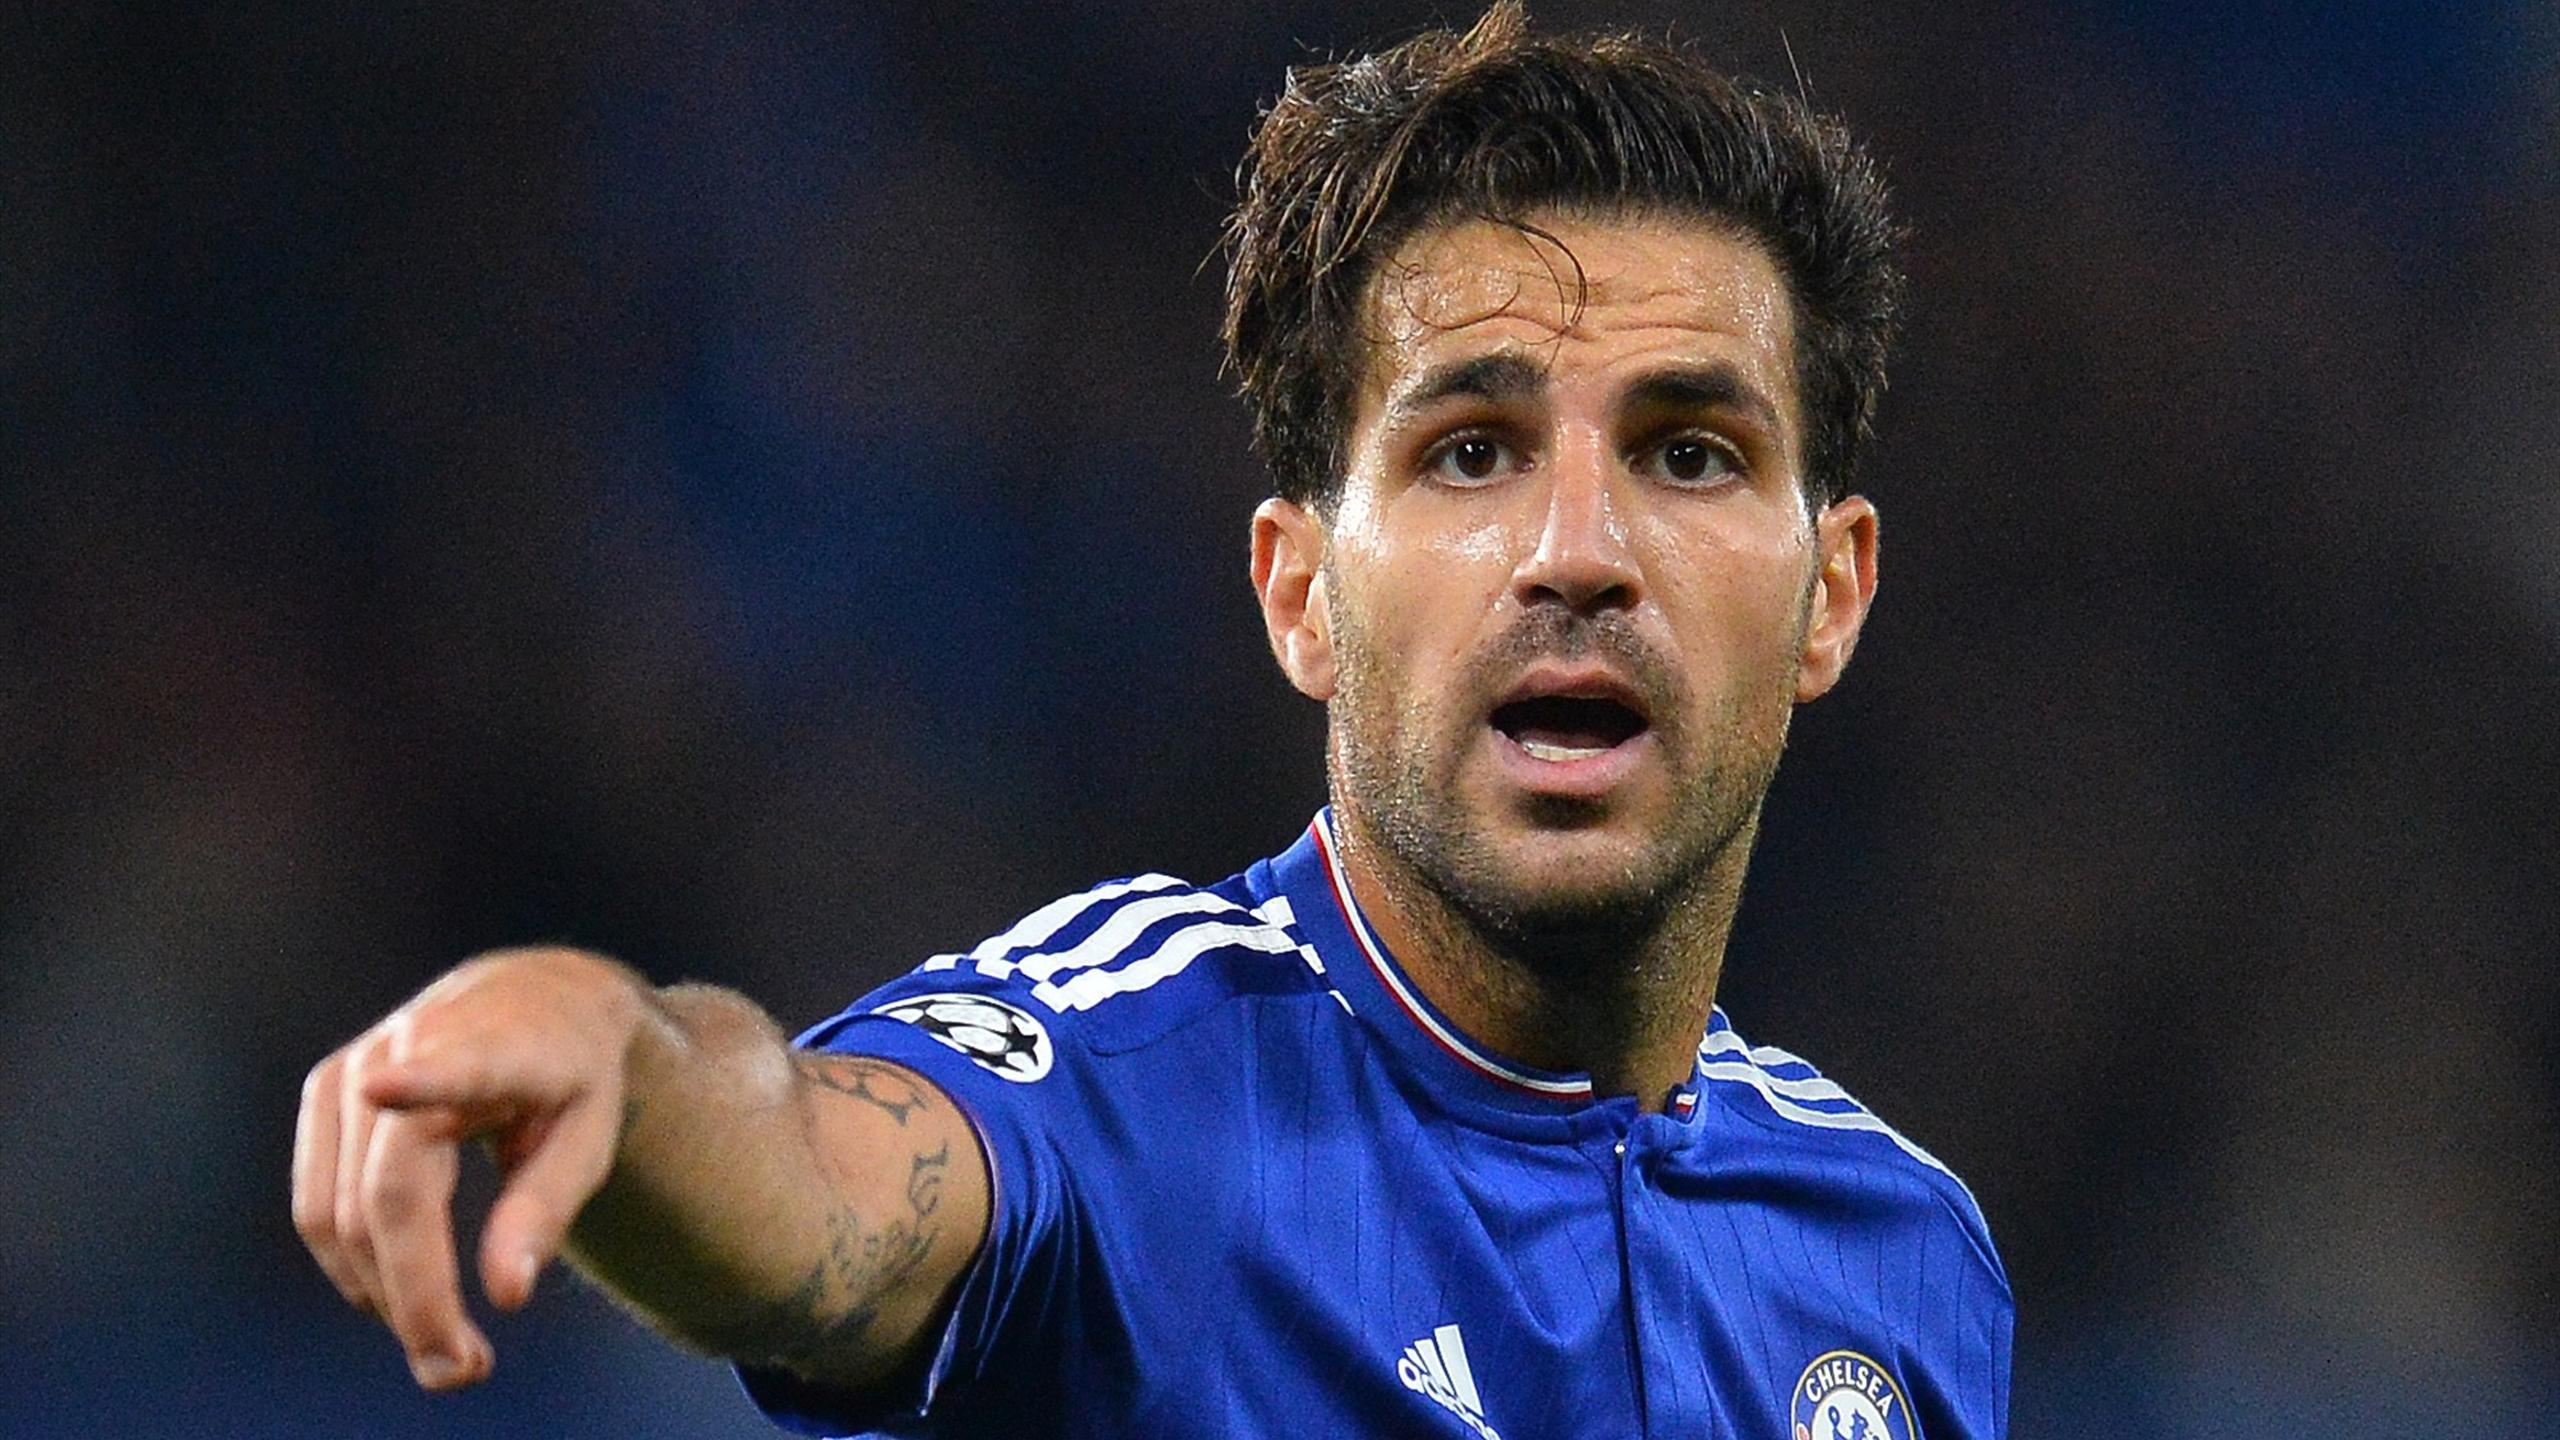 Chelsea's Spanish midfielder Cesc Fabregas gestures during the UEFA Champions League, group G, football match between Chelsea and Maccabi Tel Aviv at Stamford Bridge in London on September 16, 2015.